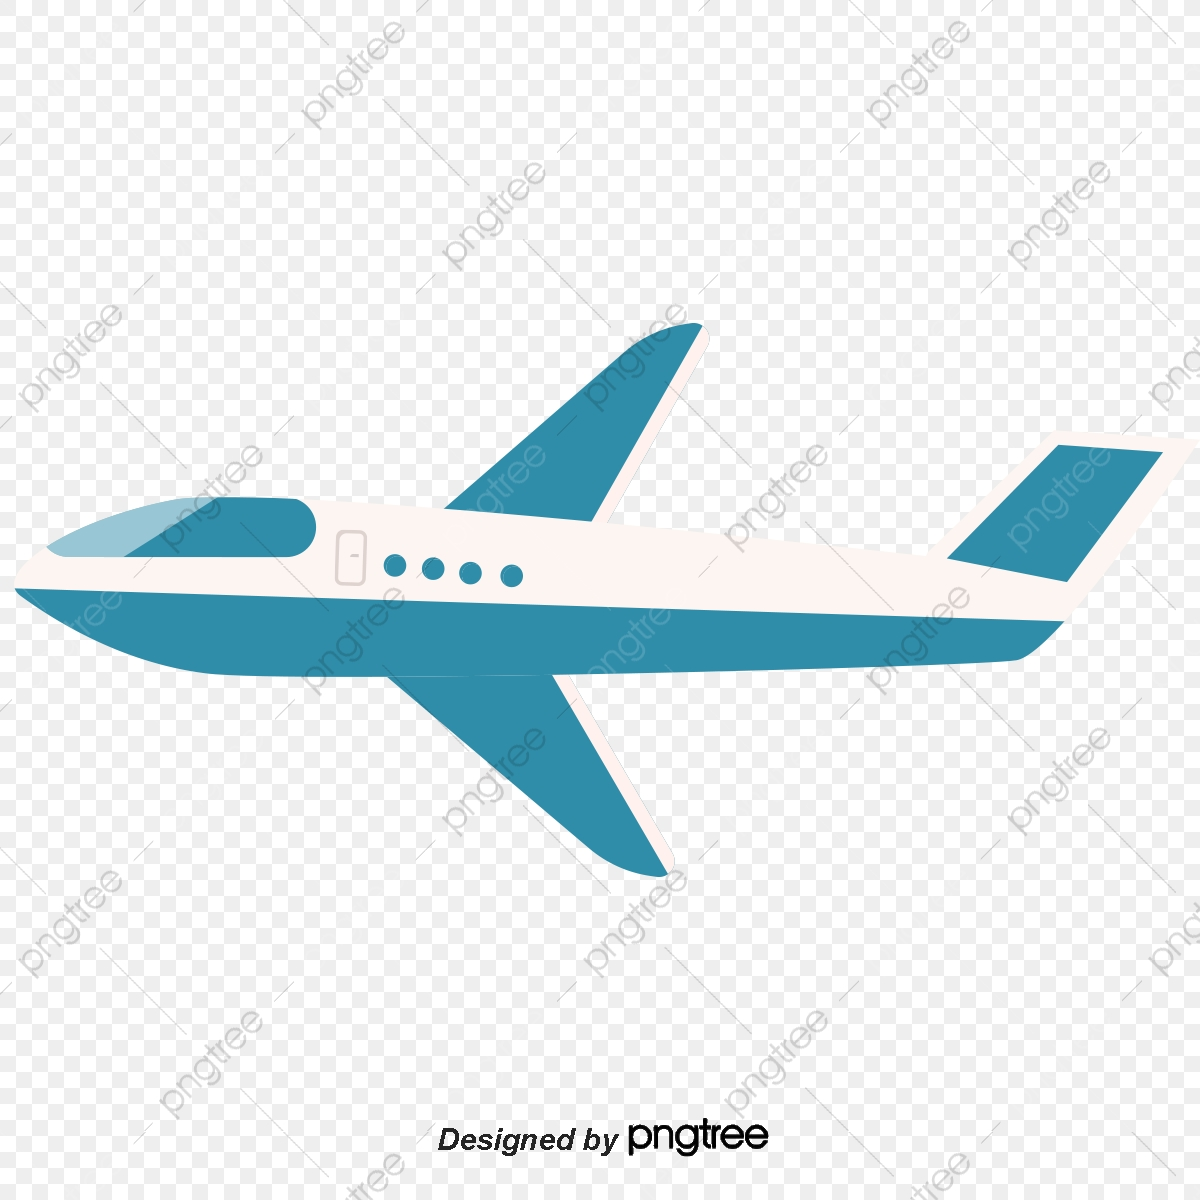 Cartoon Plane Png Images Vector And Psd Files Free Download On